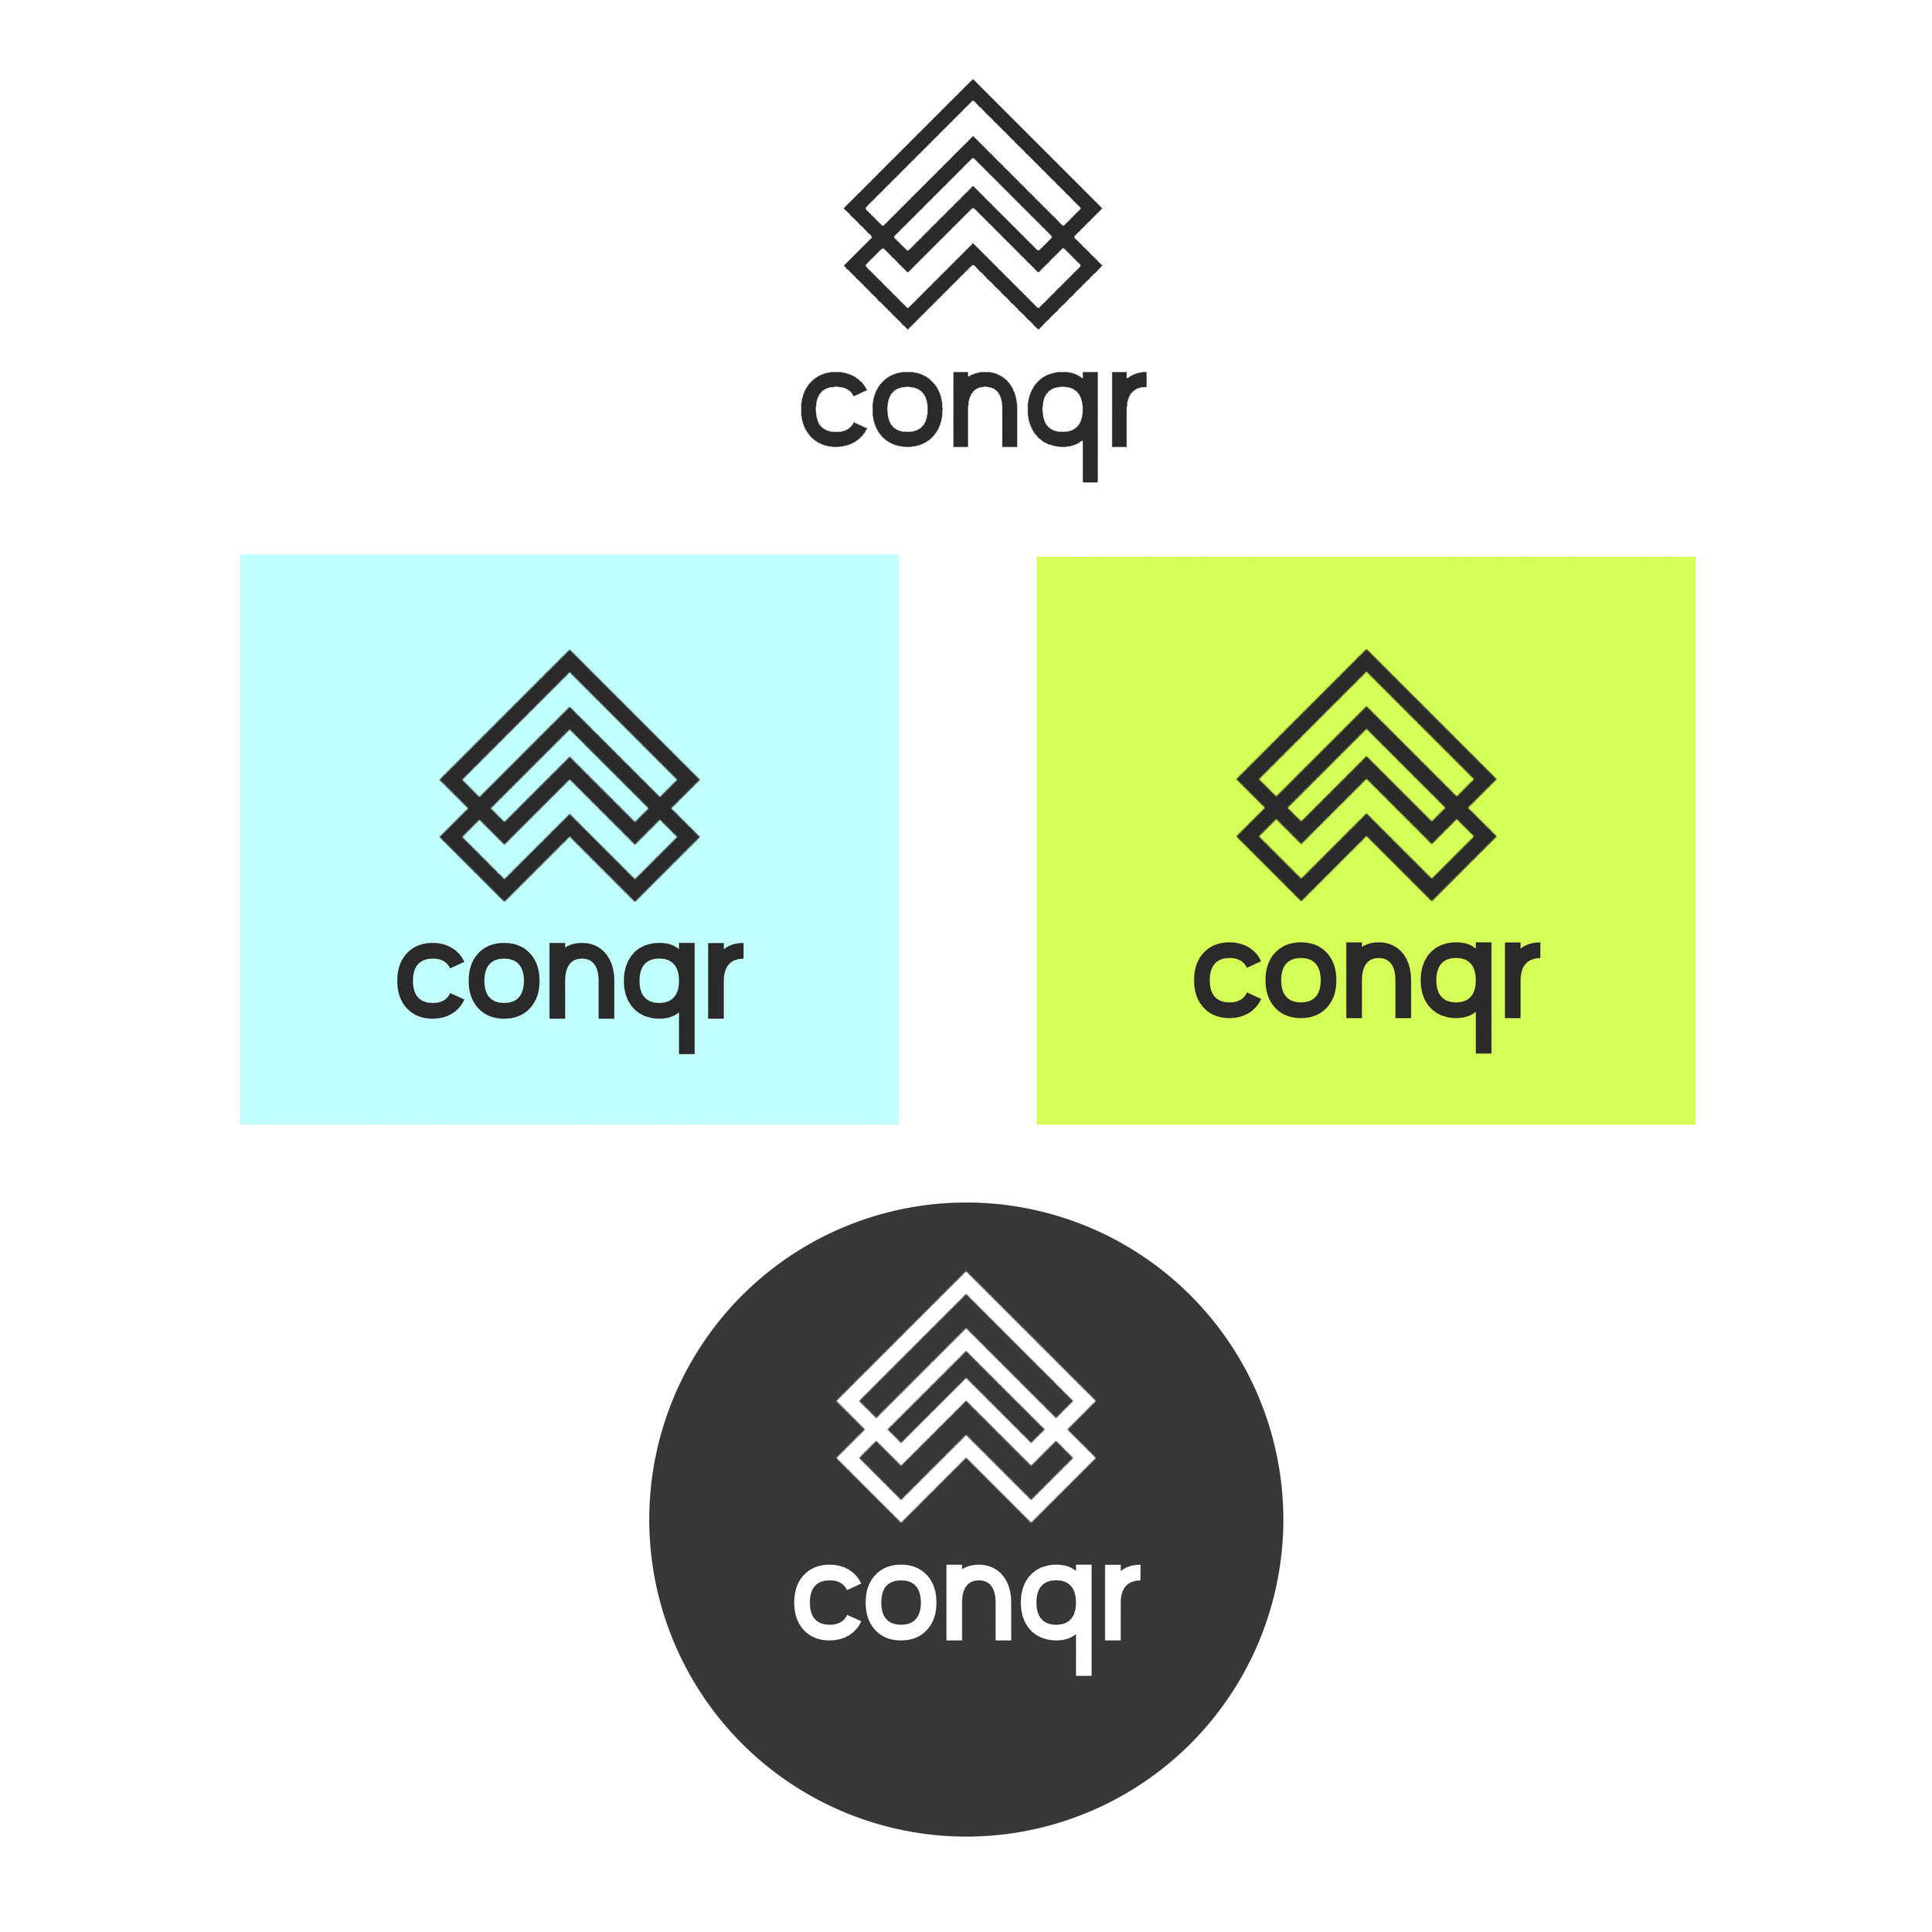 conqrlogo1.png